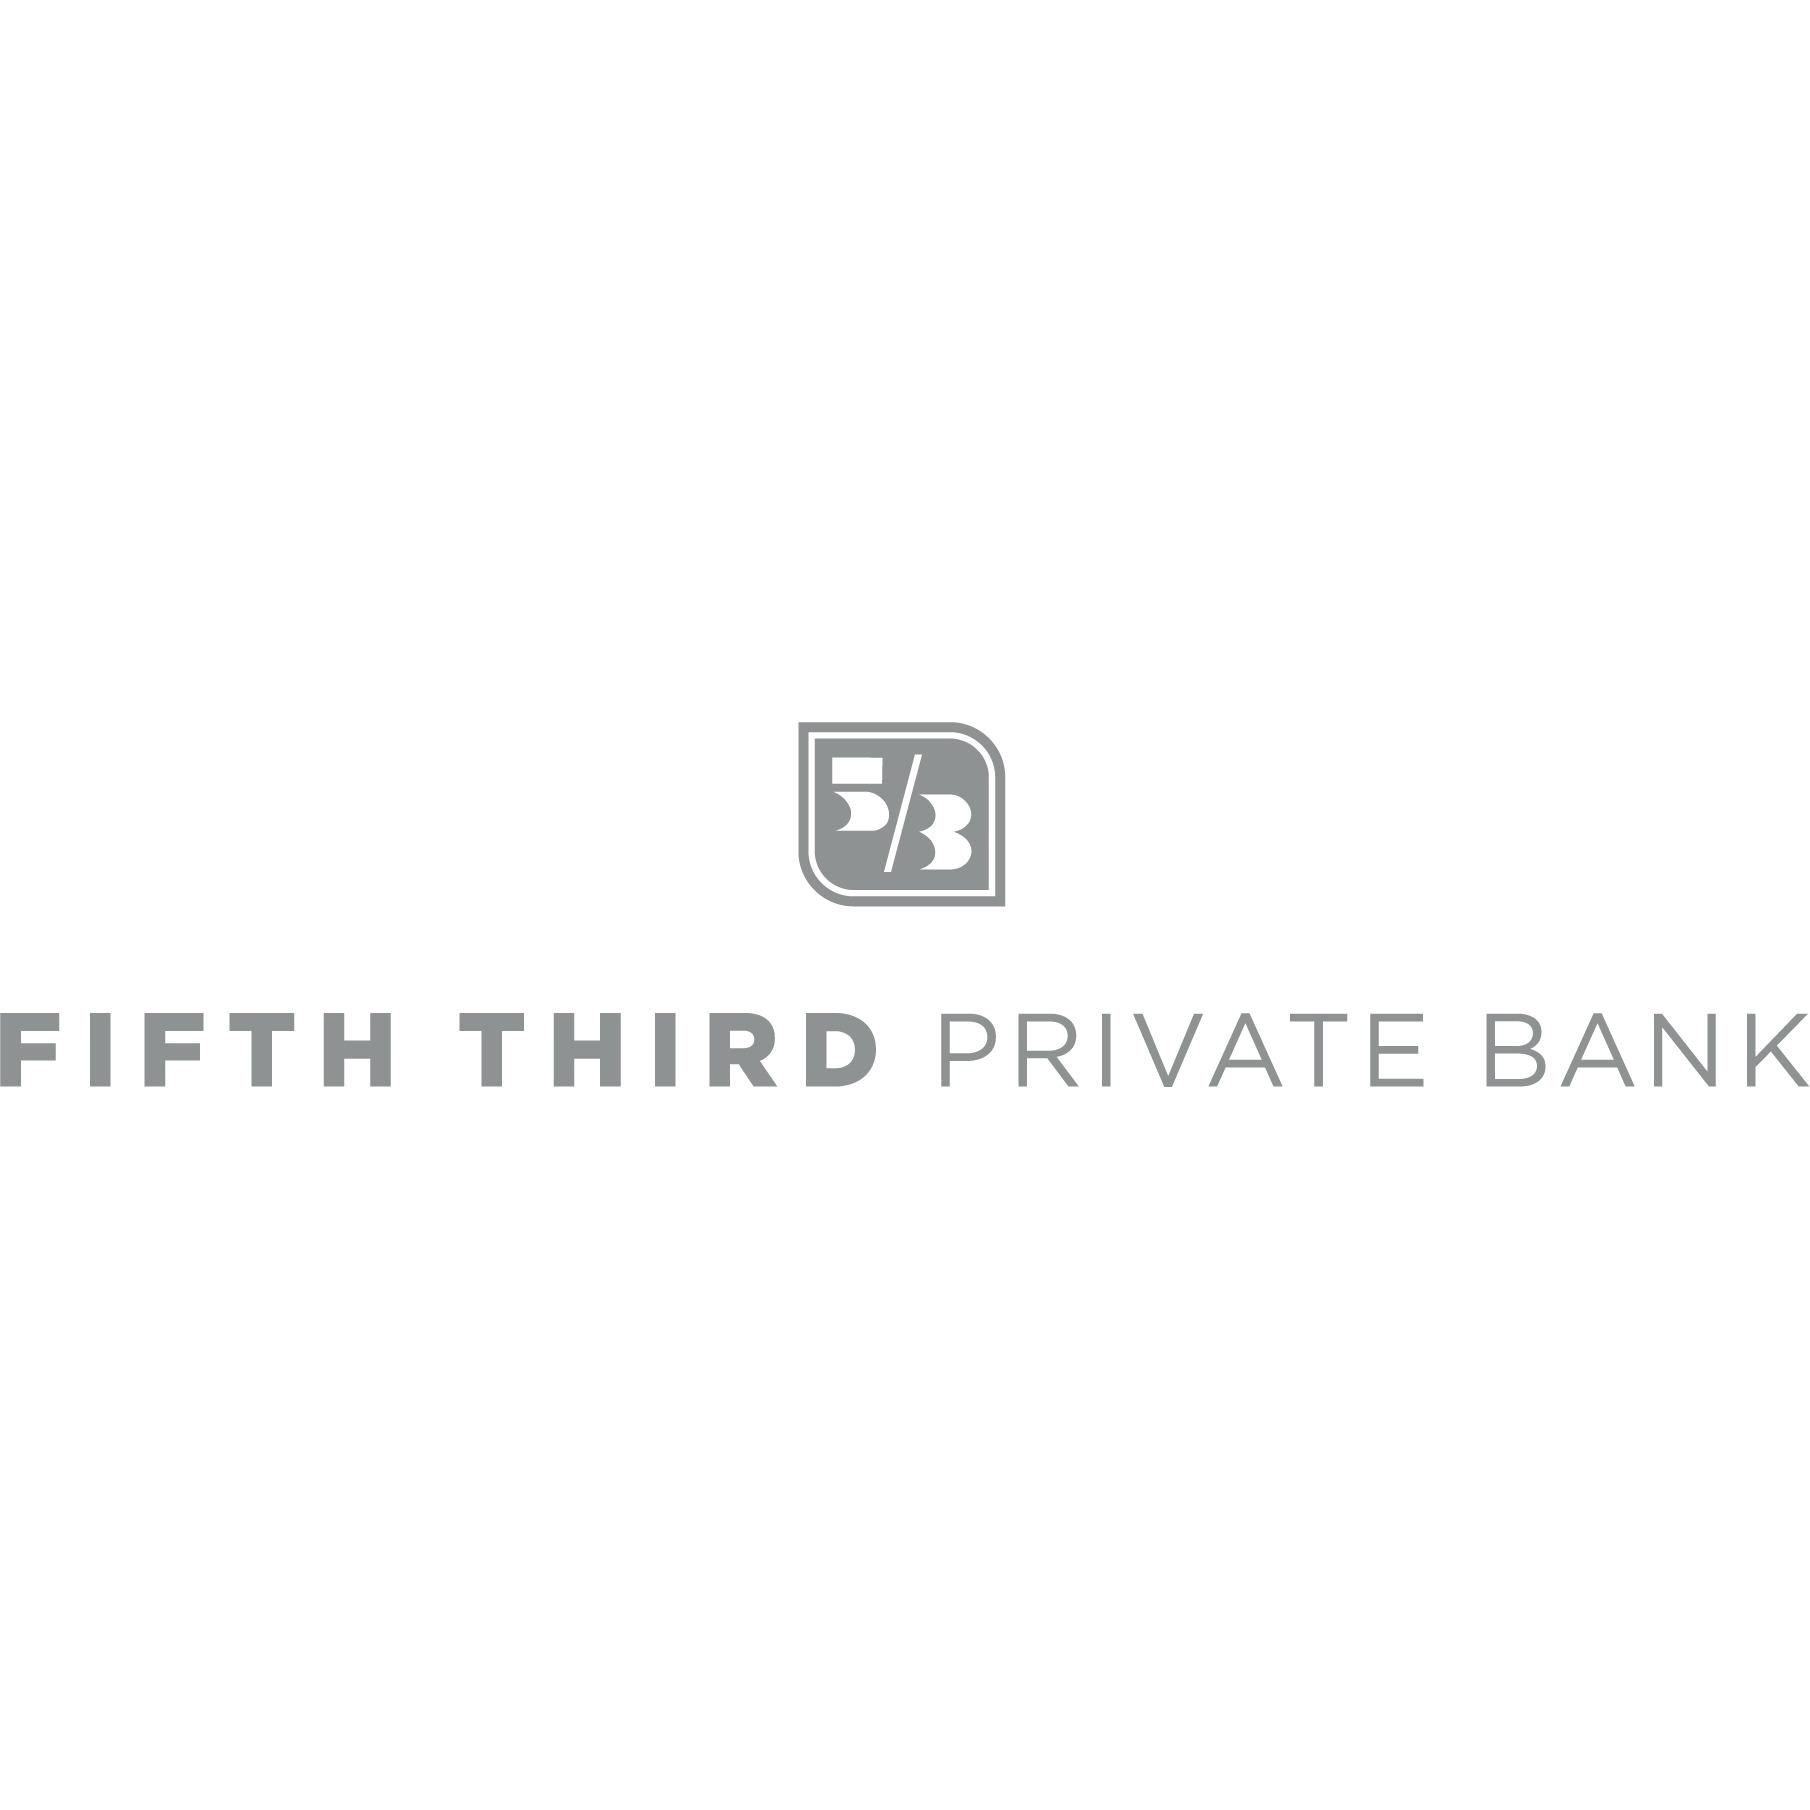 Fifth Third Private Bank - Brian Anderson